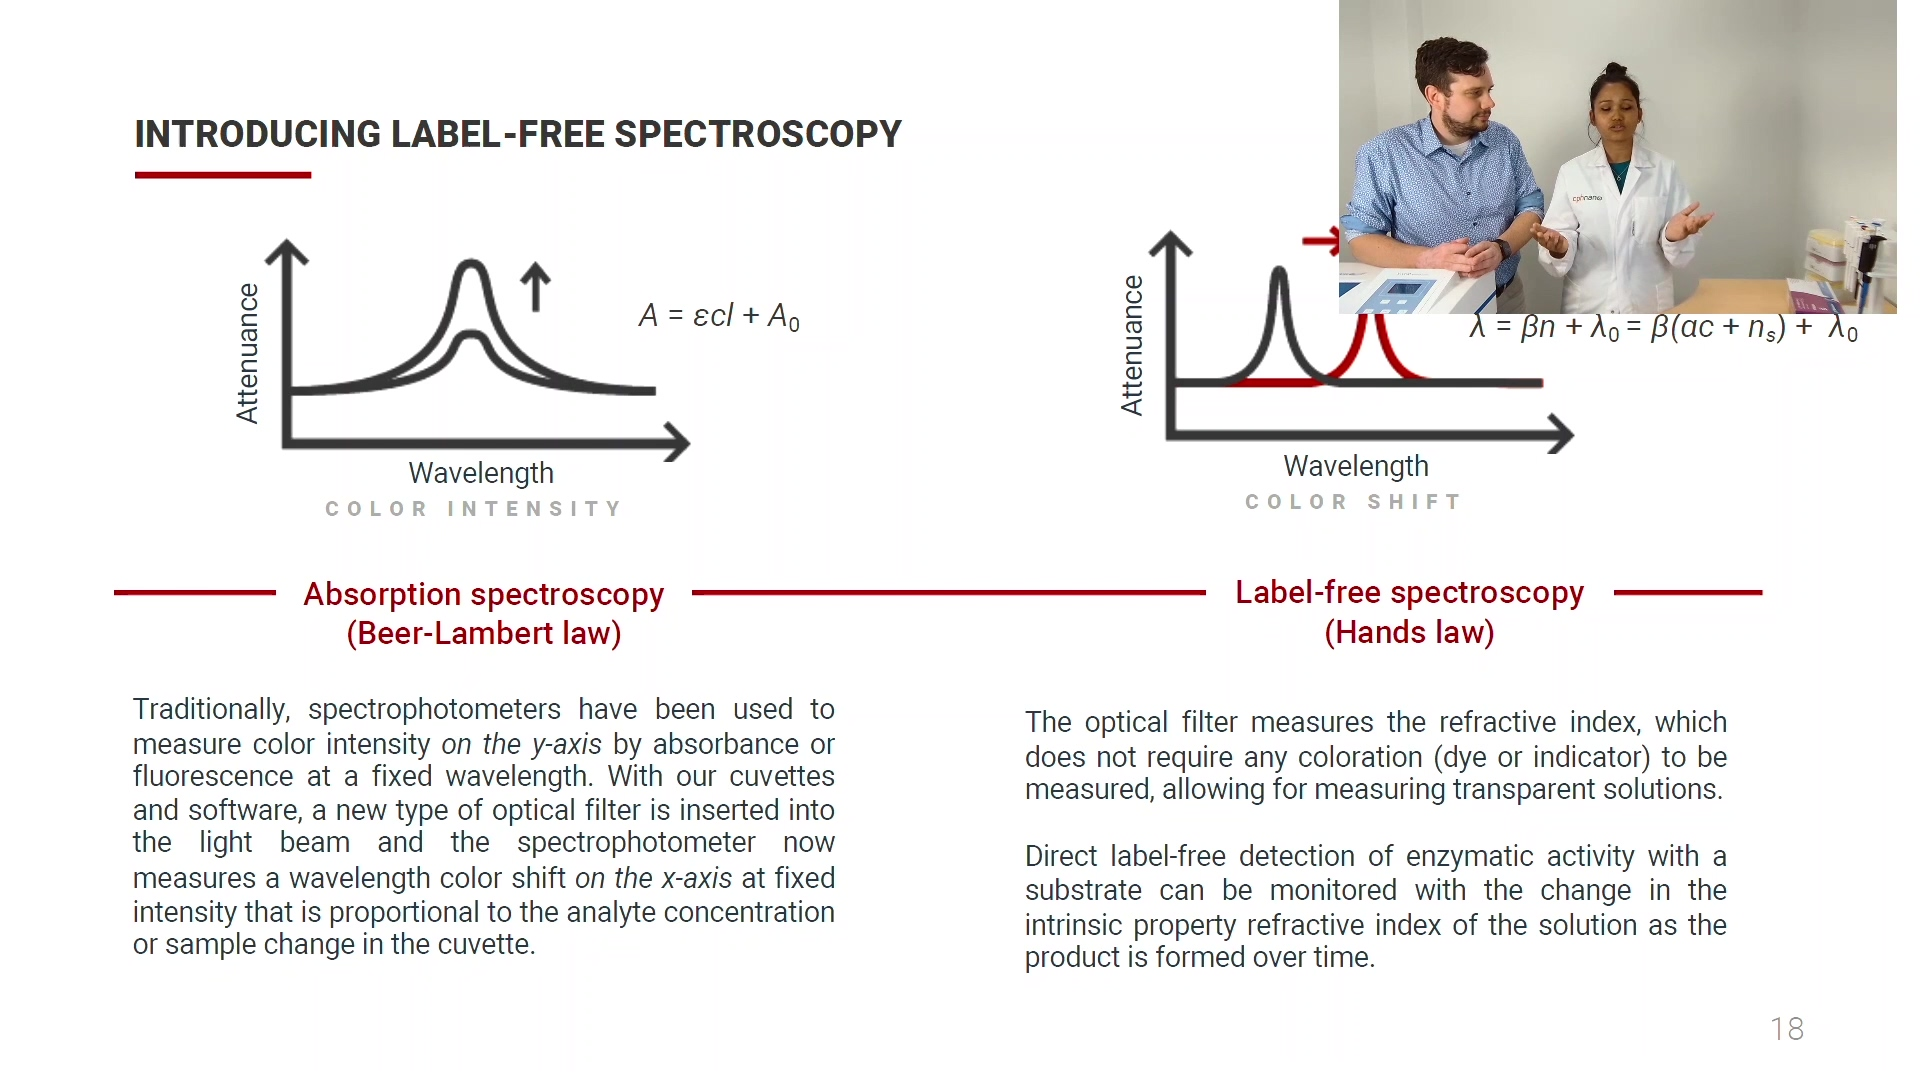 VDEO_20210701_vwr_webinar_Clip_05_Labelfree_Spectroscopy_with_intro_outro